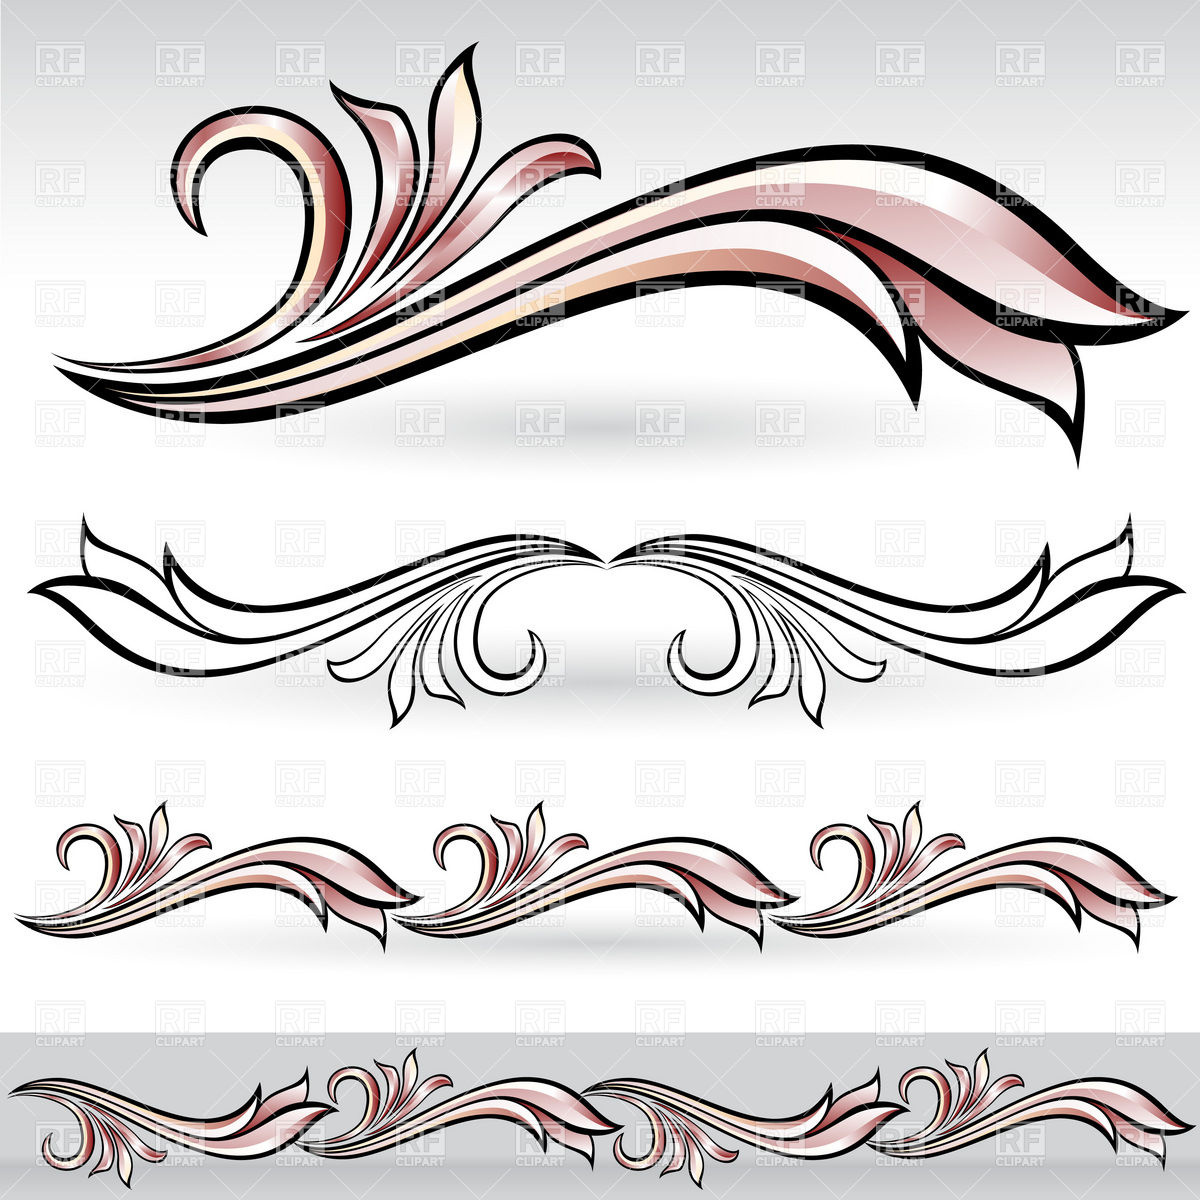 7 Decorative Design Elements Vector Images